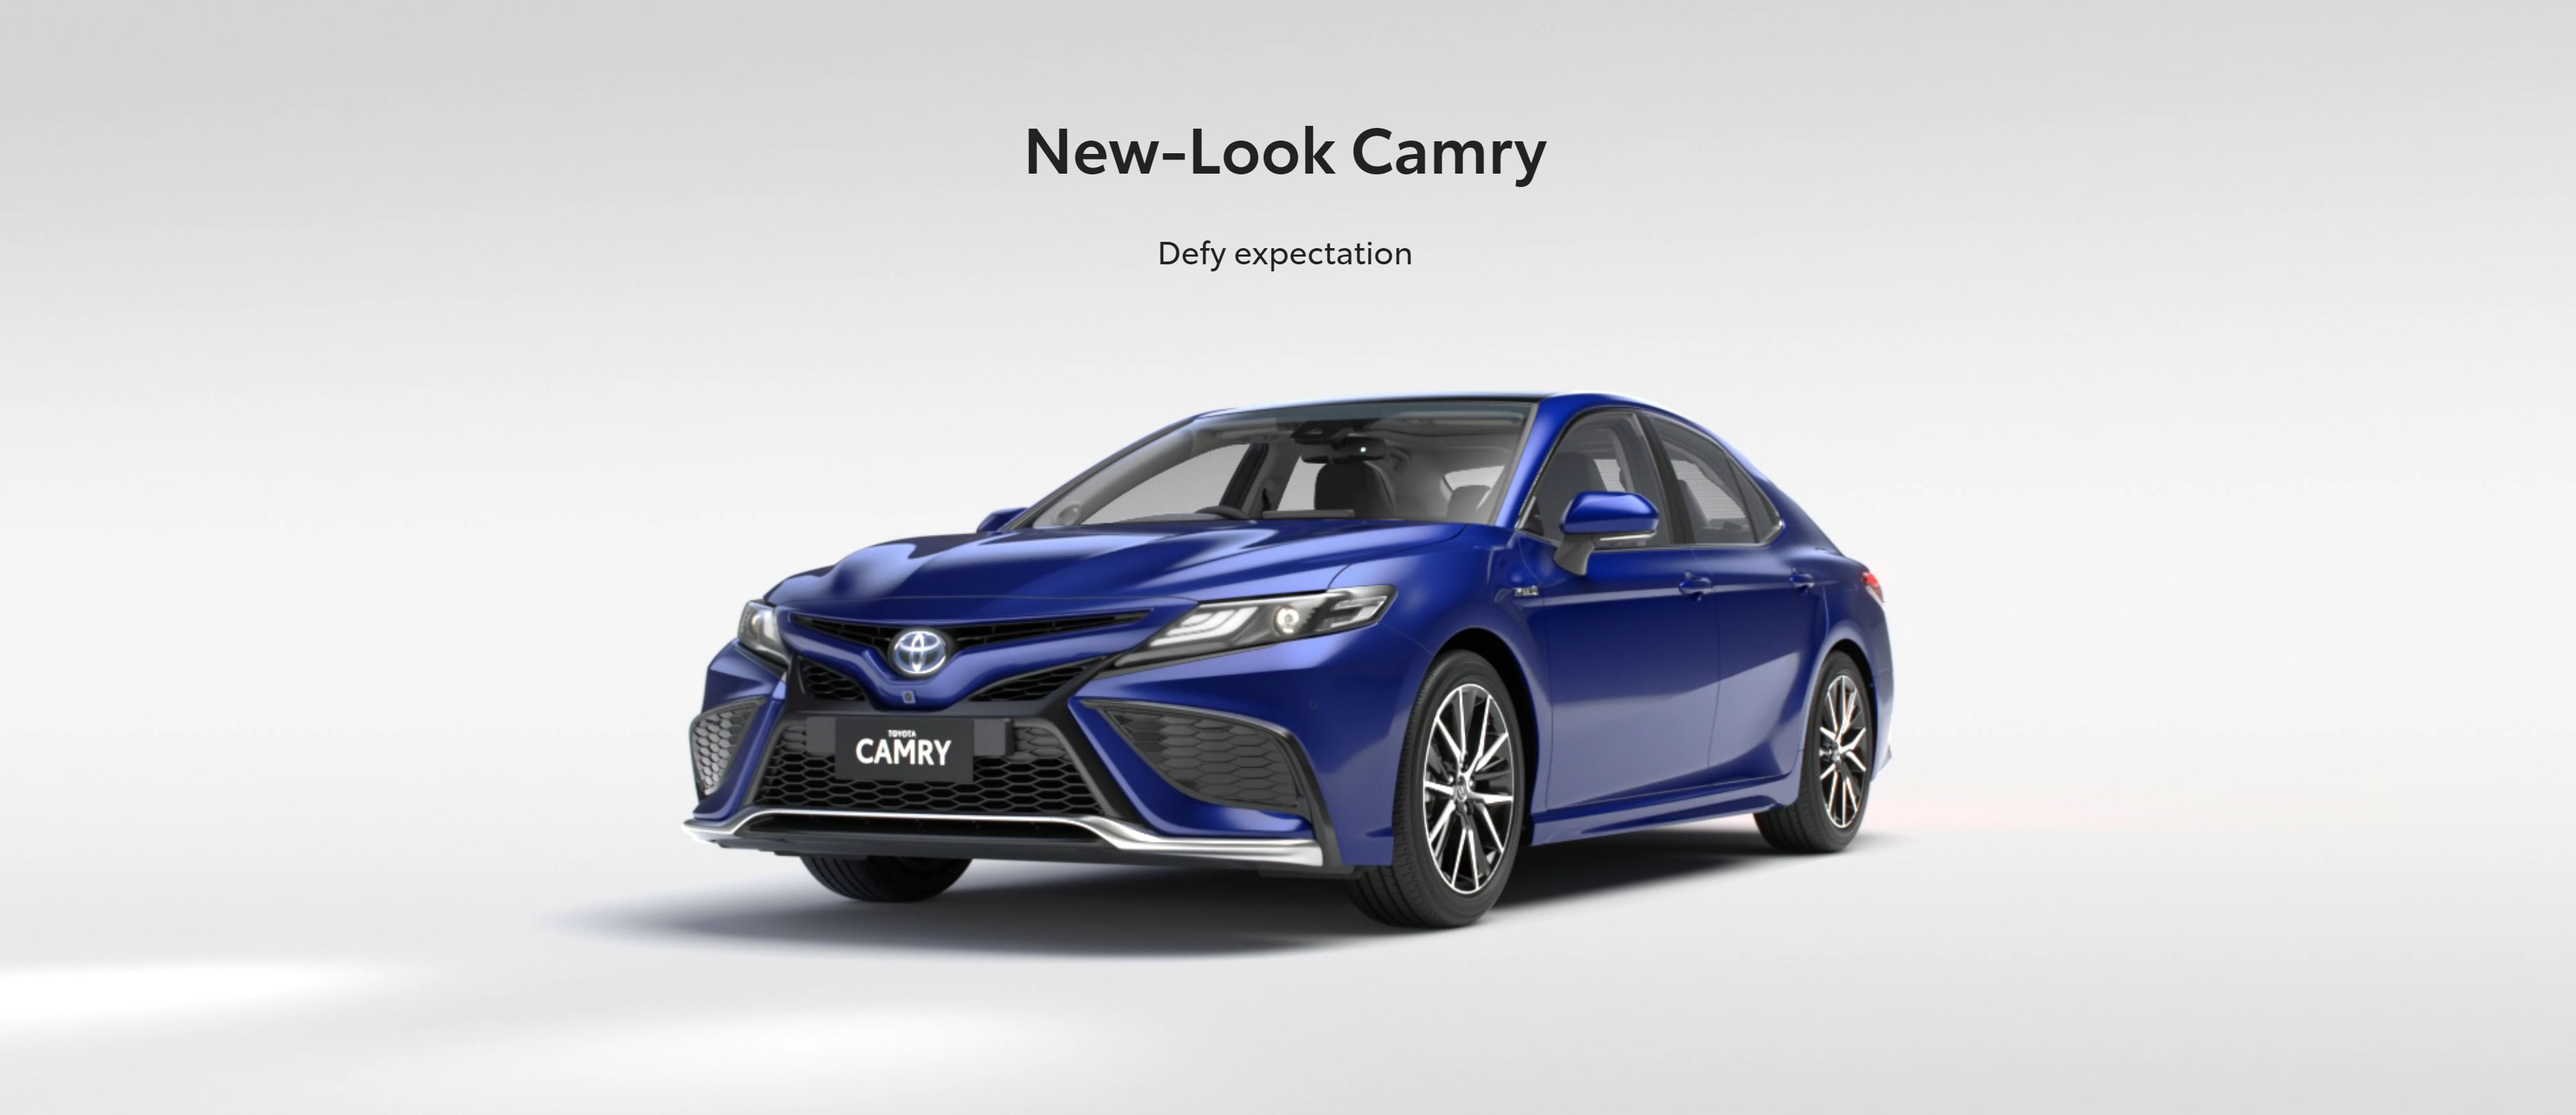 New-Look Camry